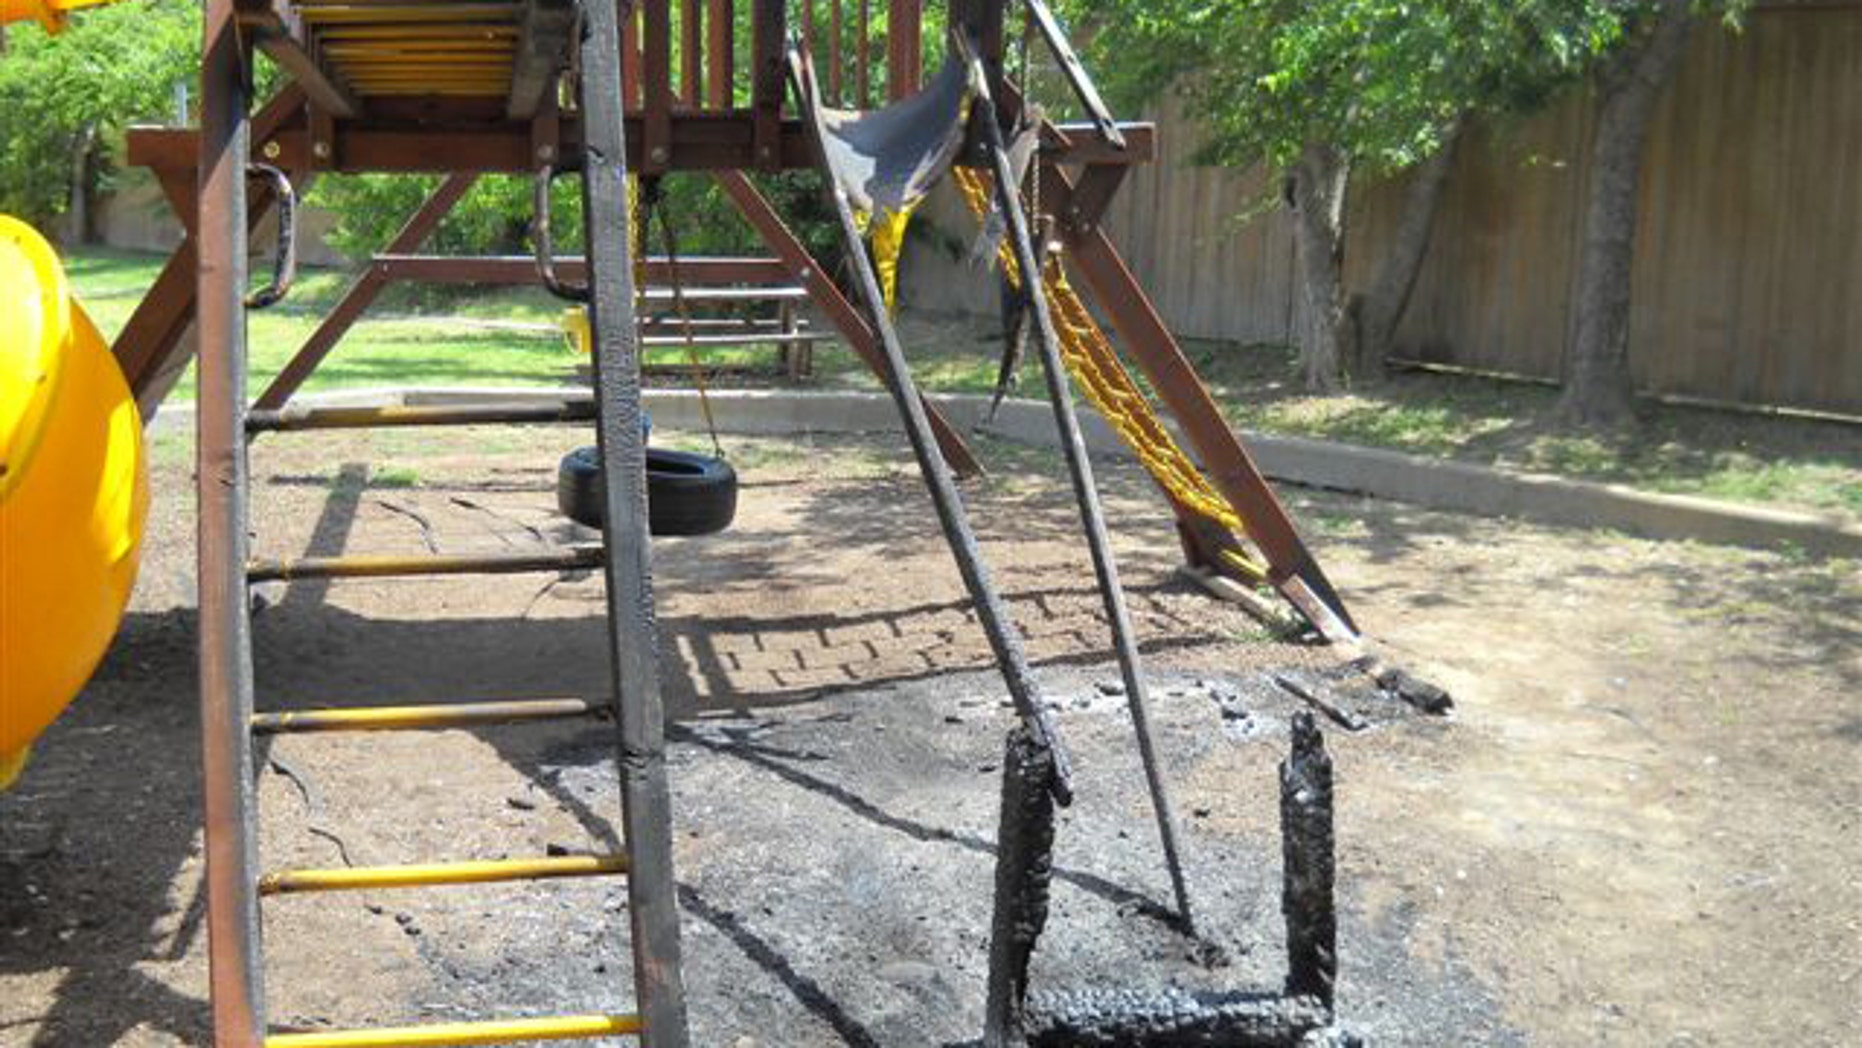 Remains of Dar El-Eman Islamic Center's playground after it was torched on July 25.